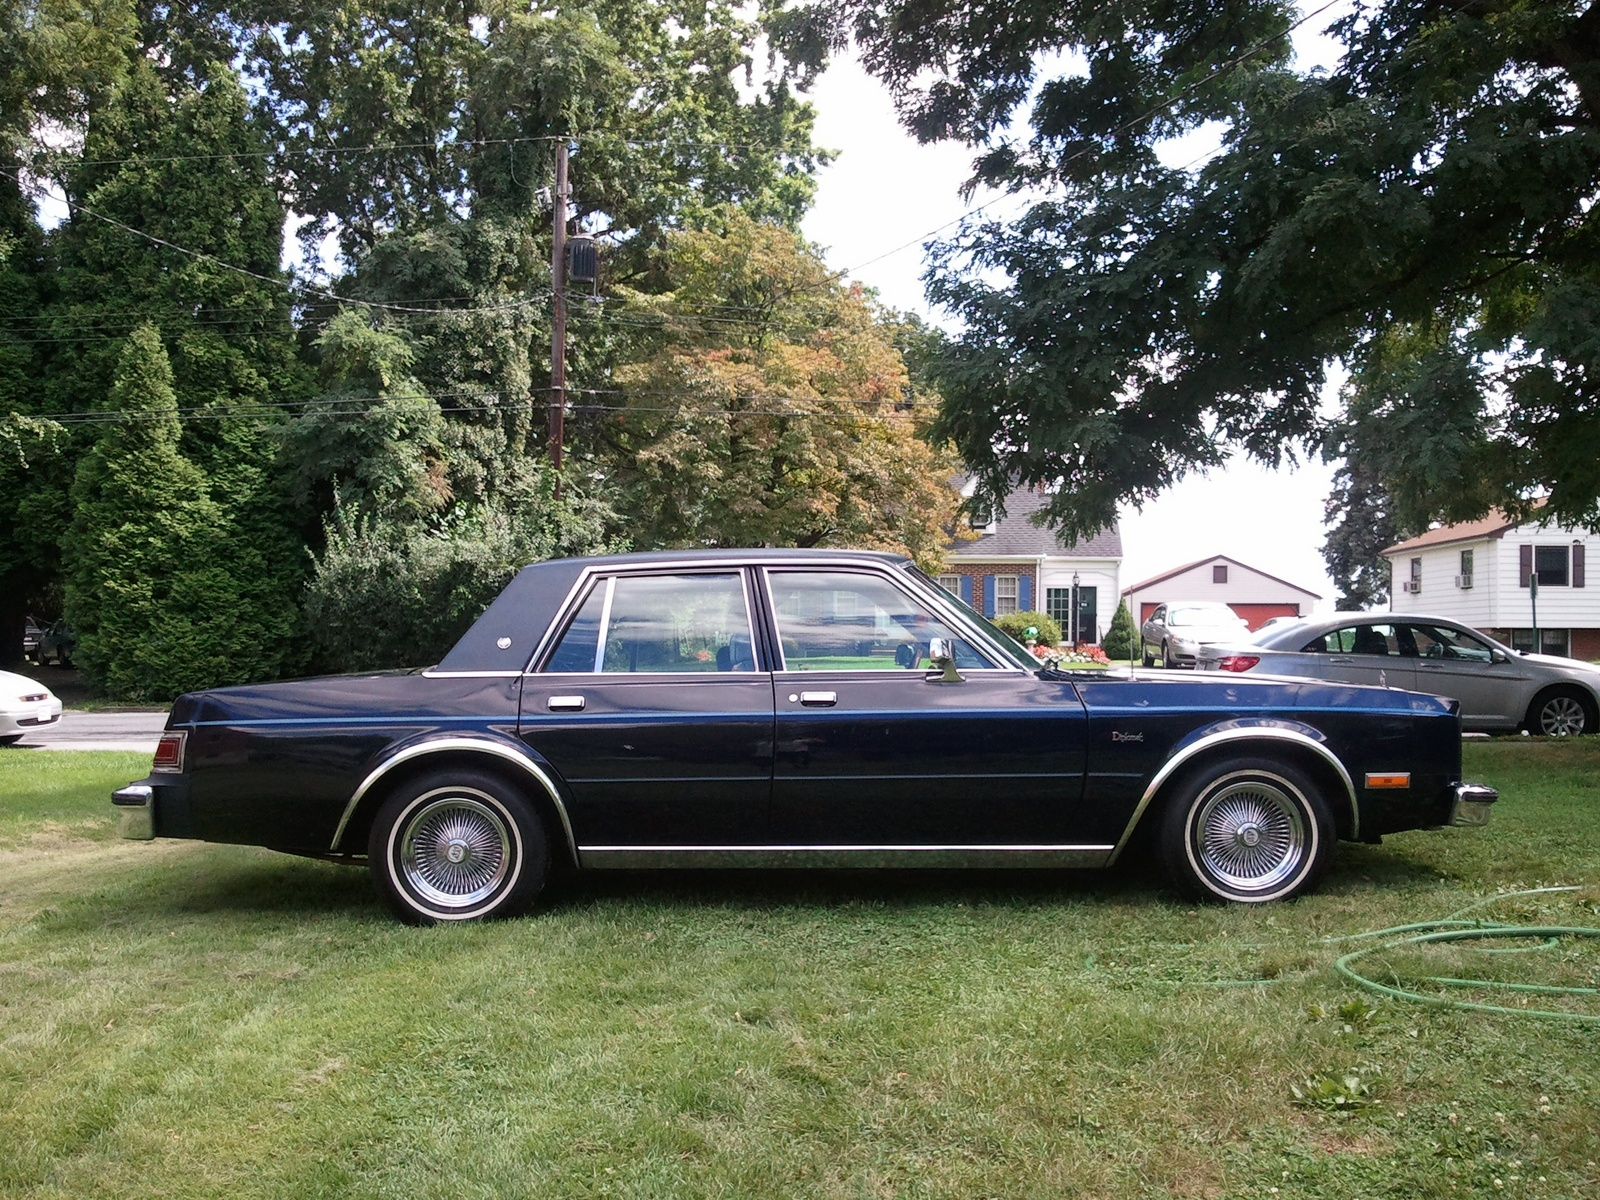 1987 Dodge Diplomat - Pictures